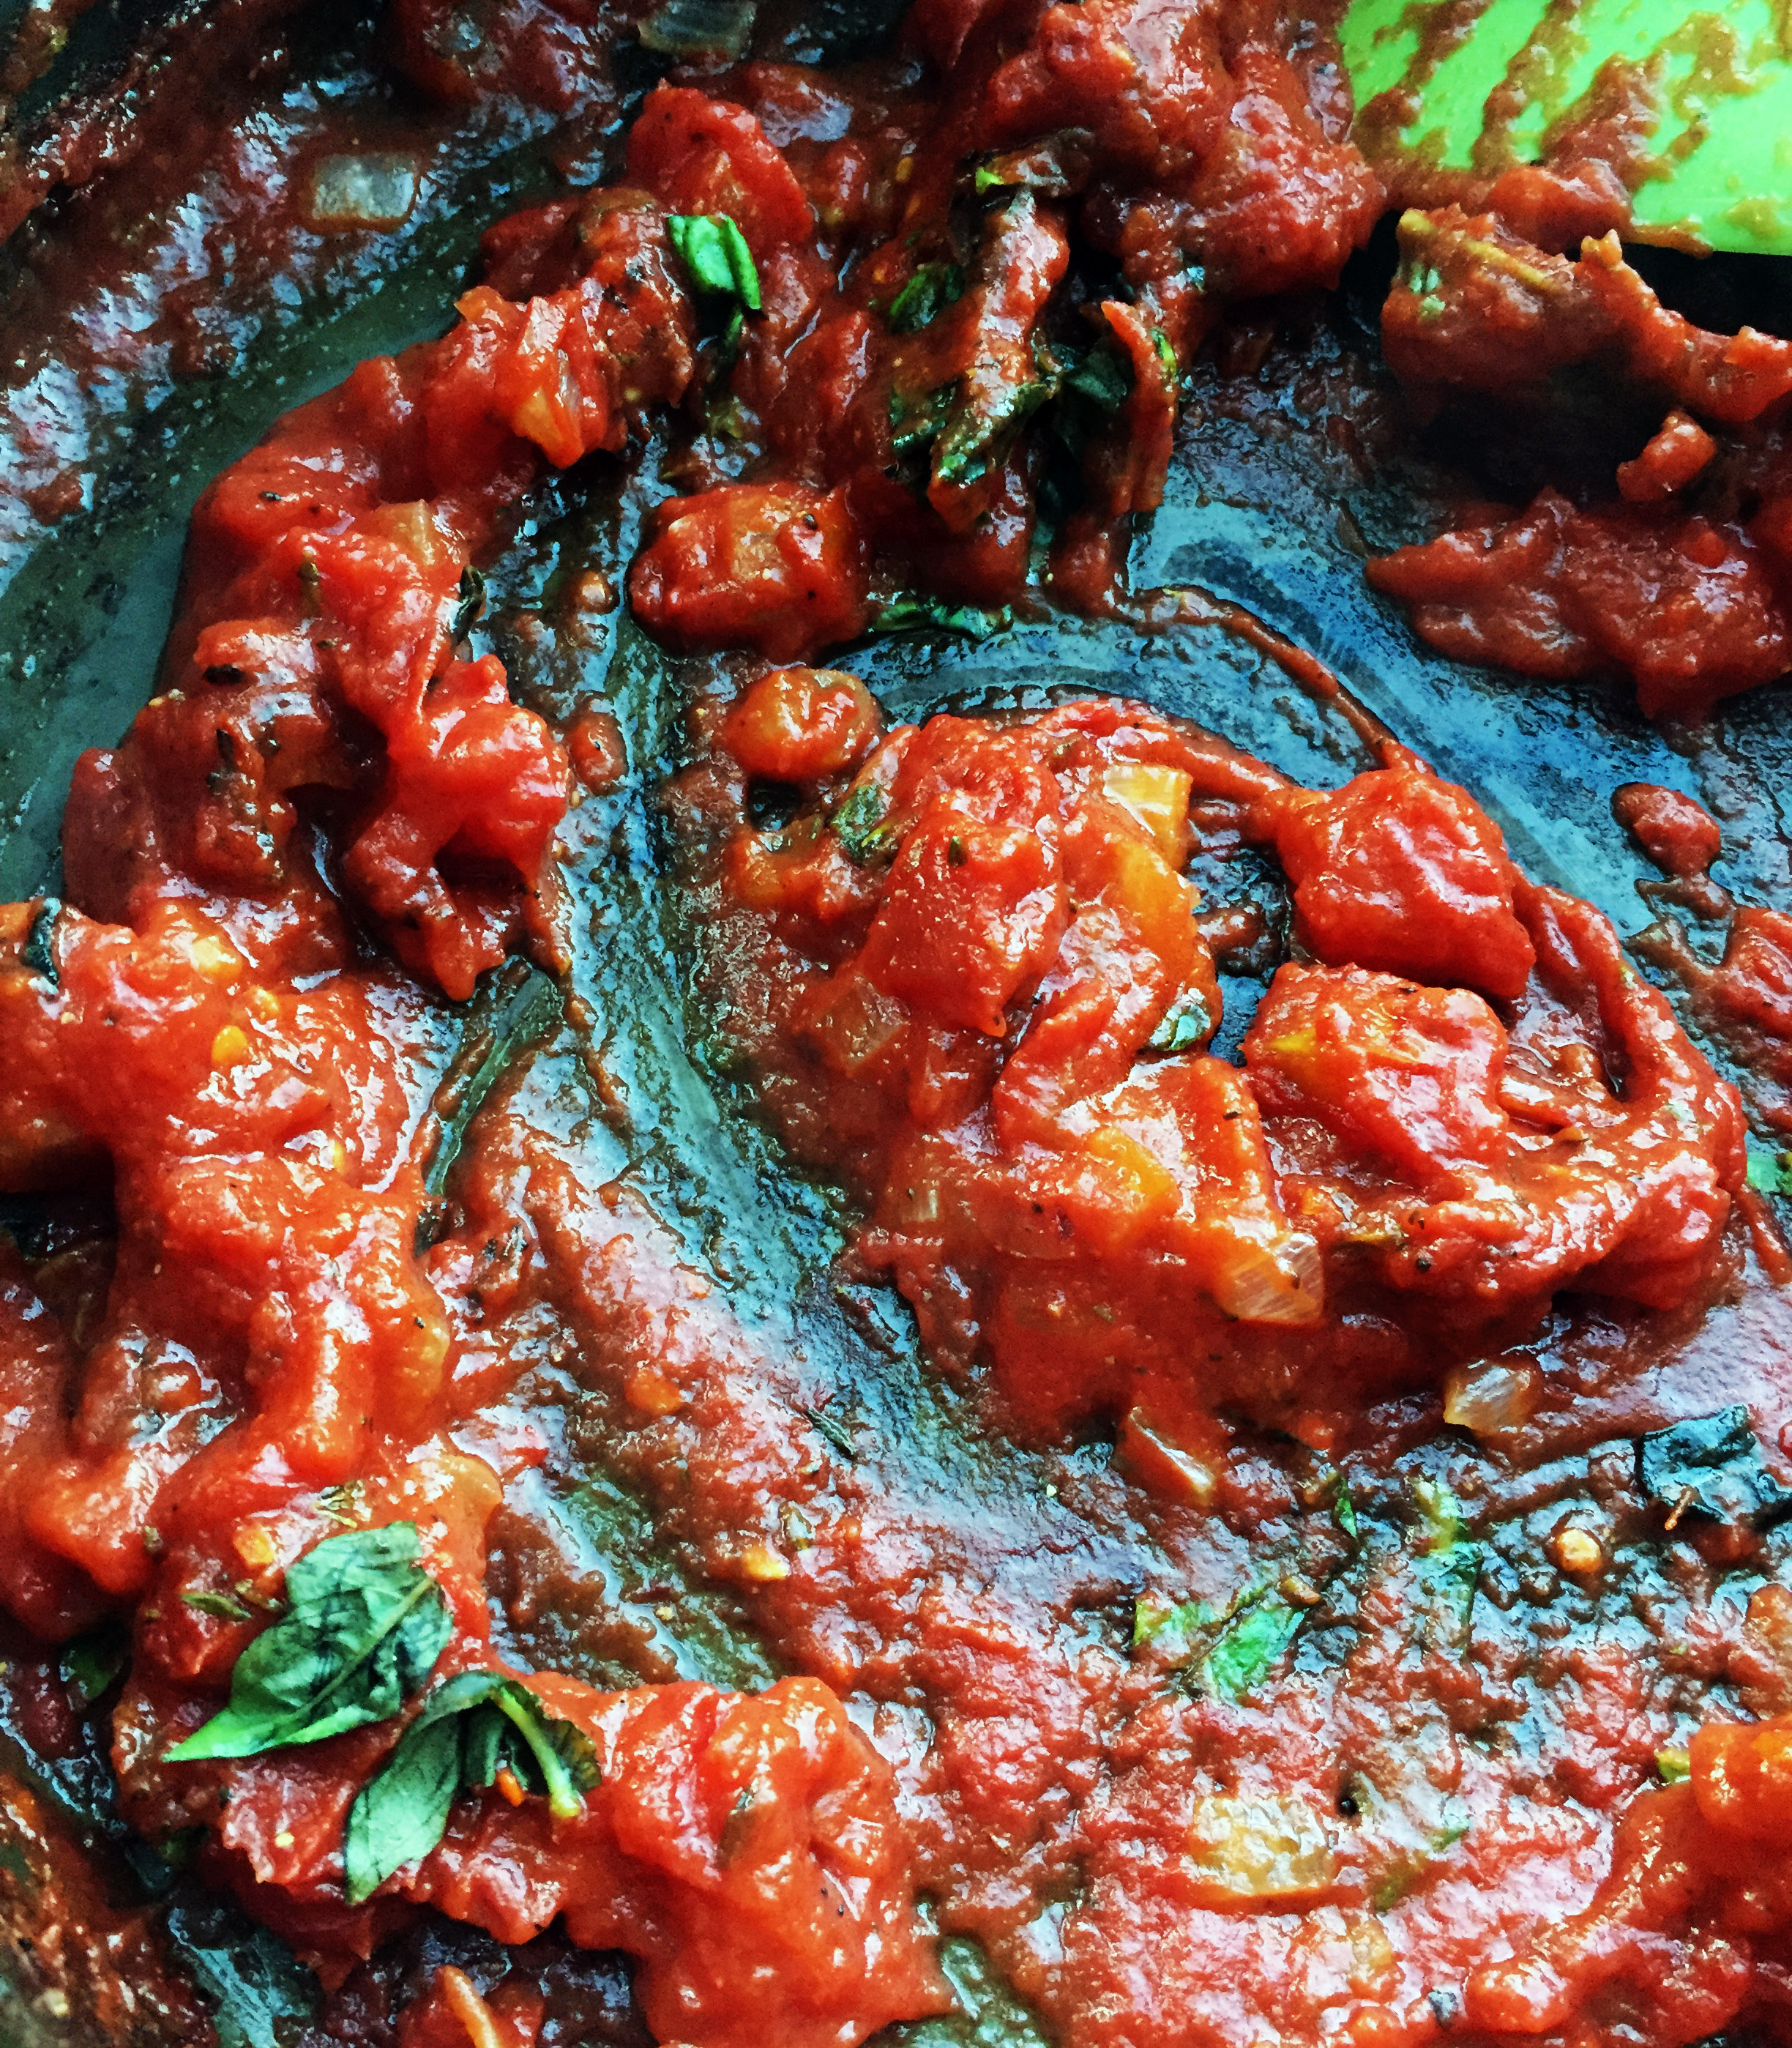 5. Add crushed tomatoes, tomato paste, spices, and basil to your pizza sauce. Reduce heat to medium-low and continue to cook for another 4-5 minutes.